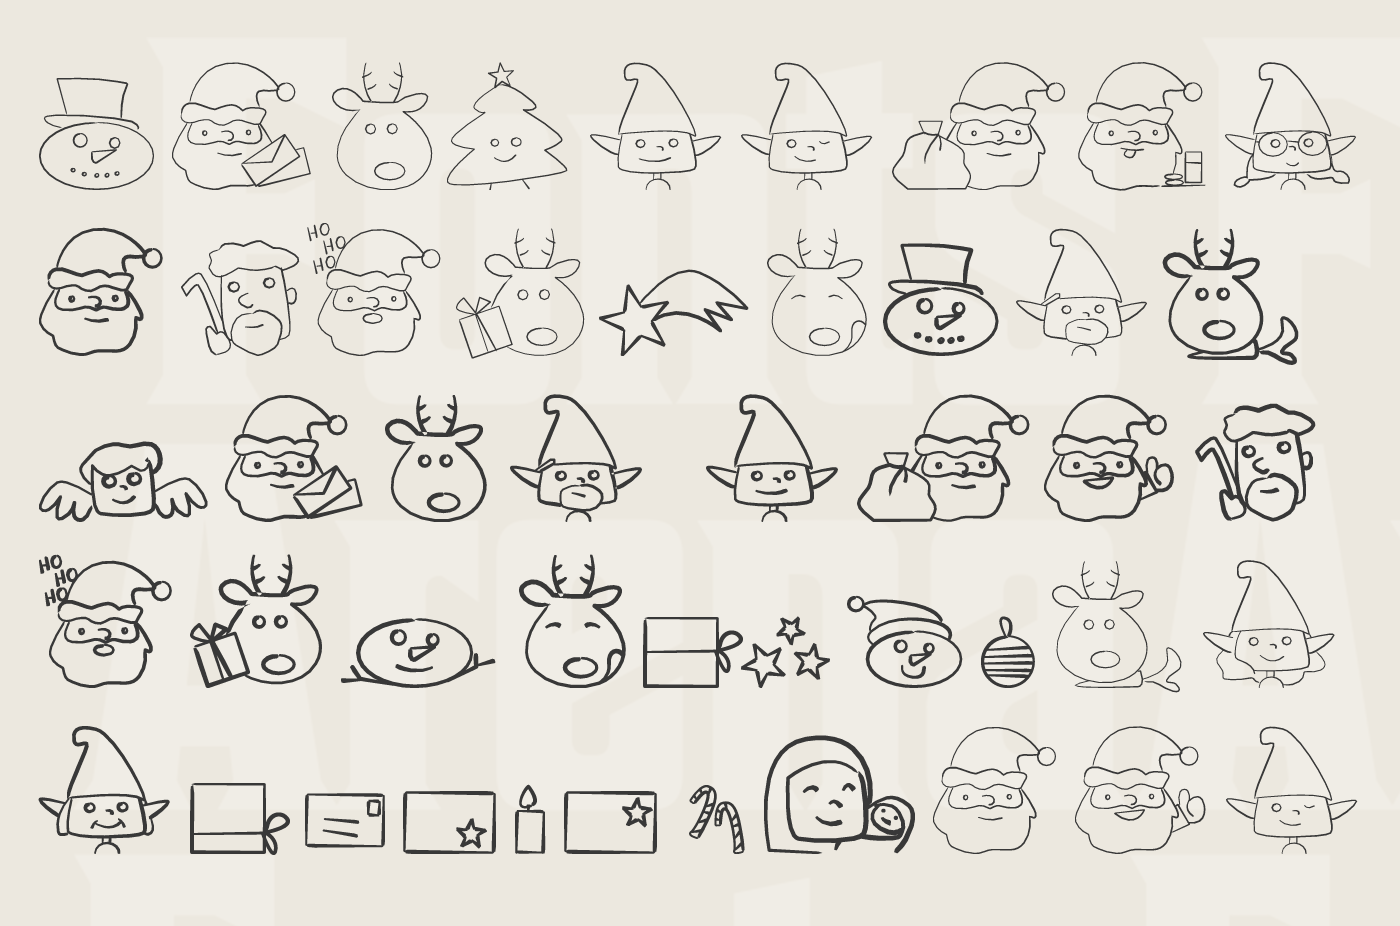 Christmas People Ding free icon font